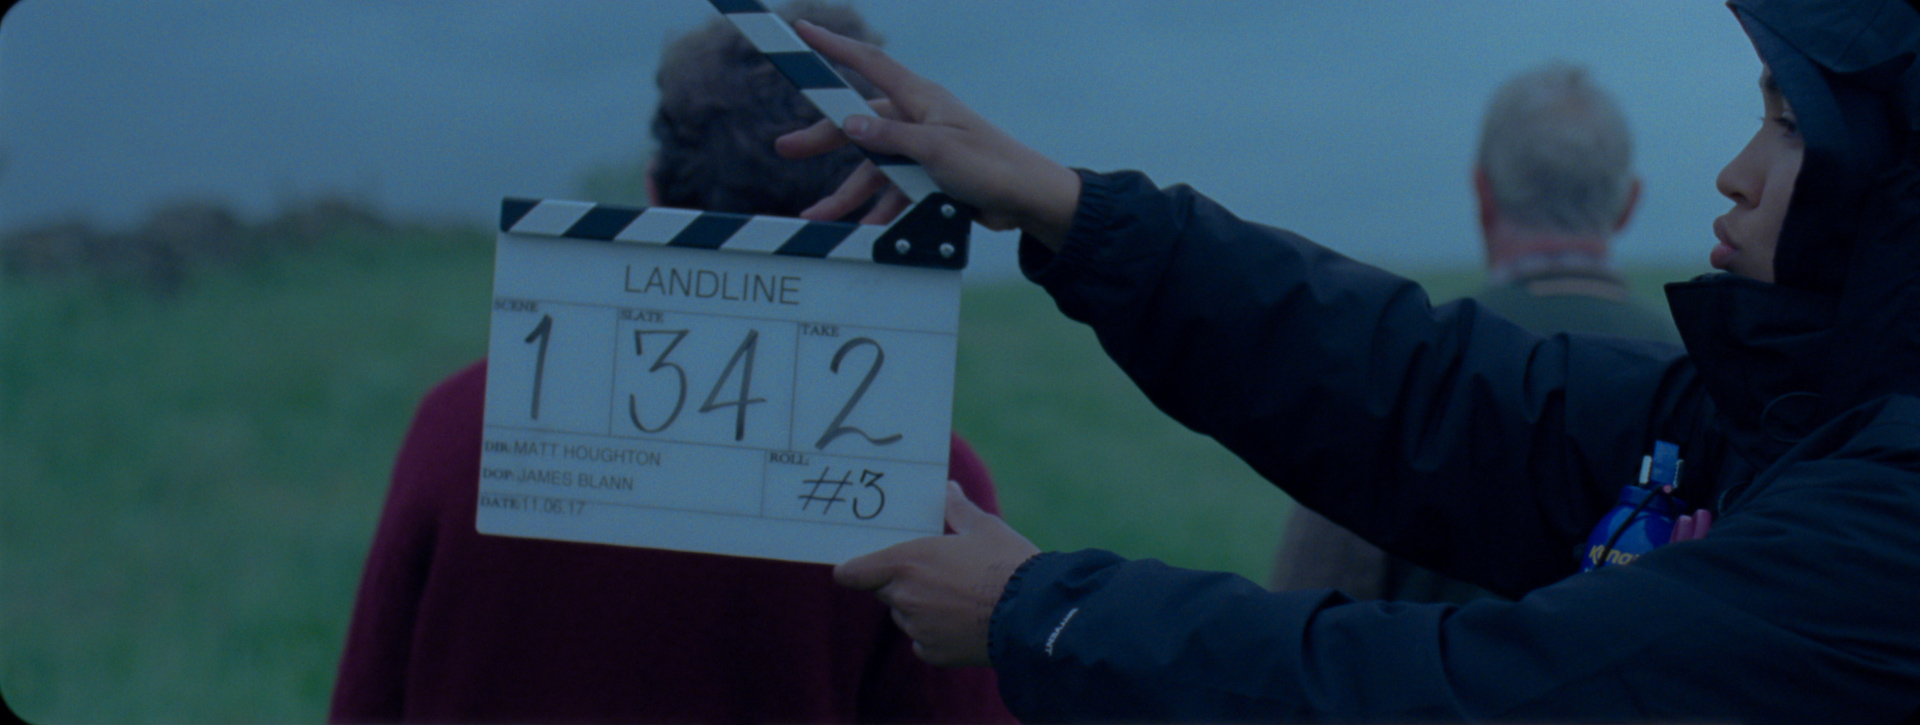 Landline-Short-Film-Matt-Houghton